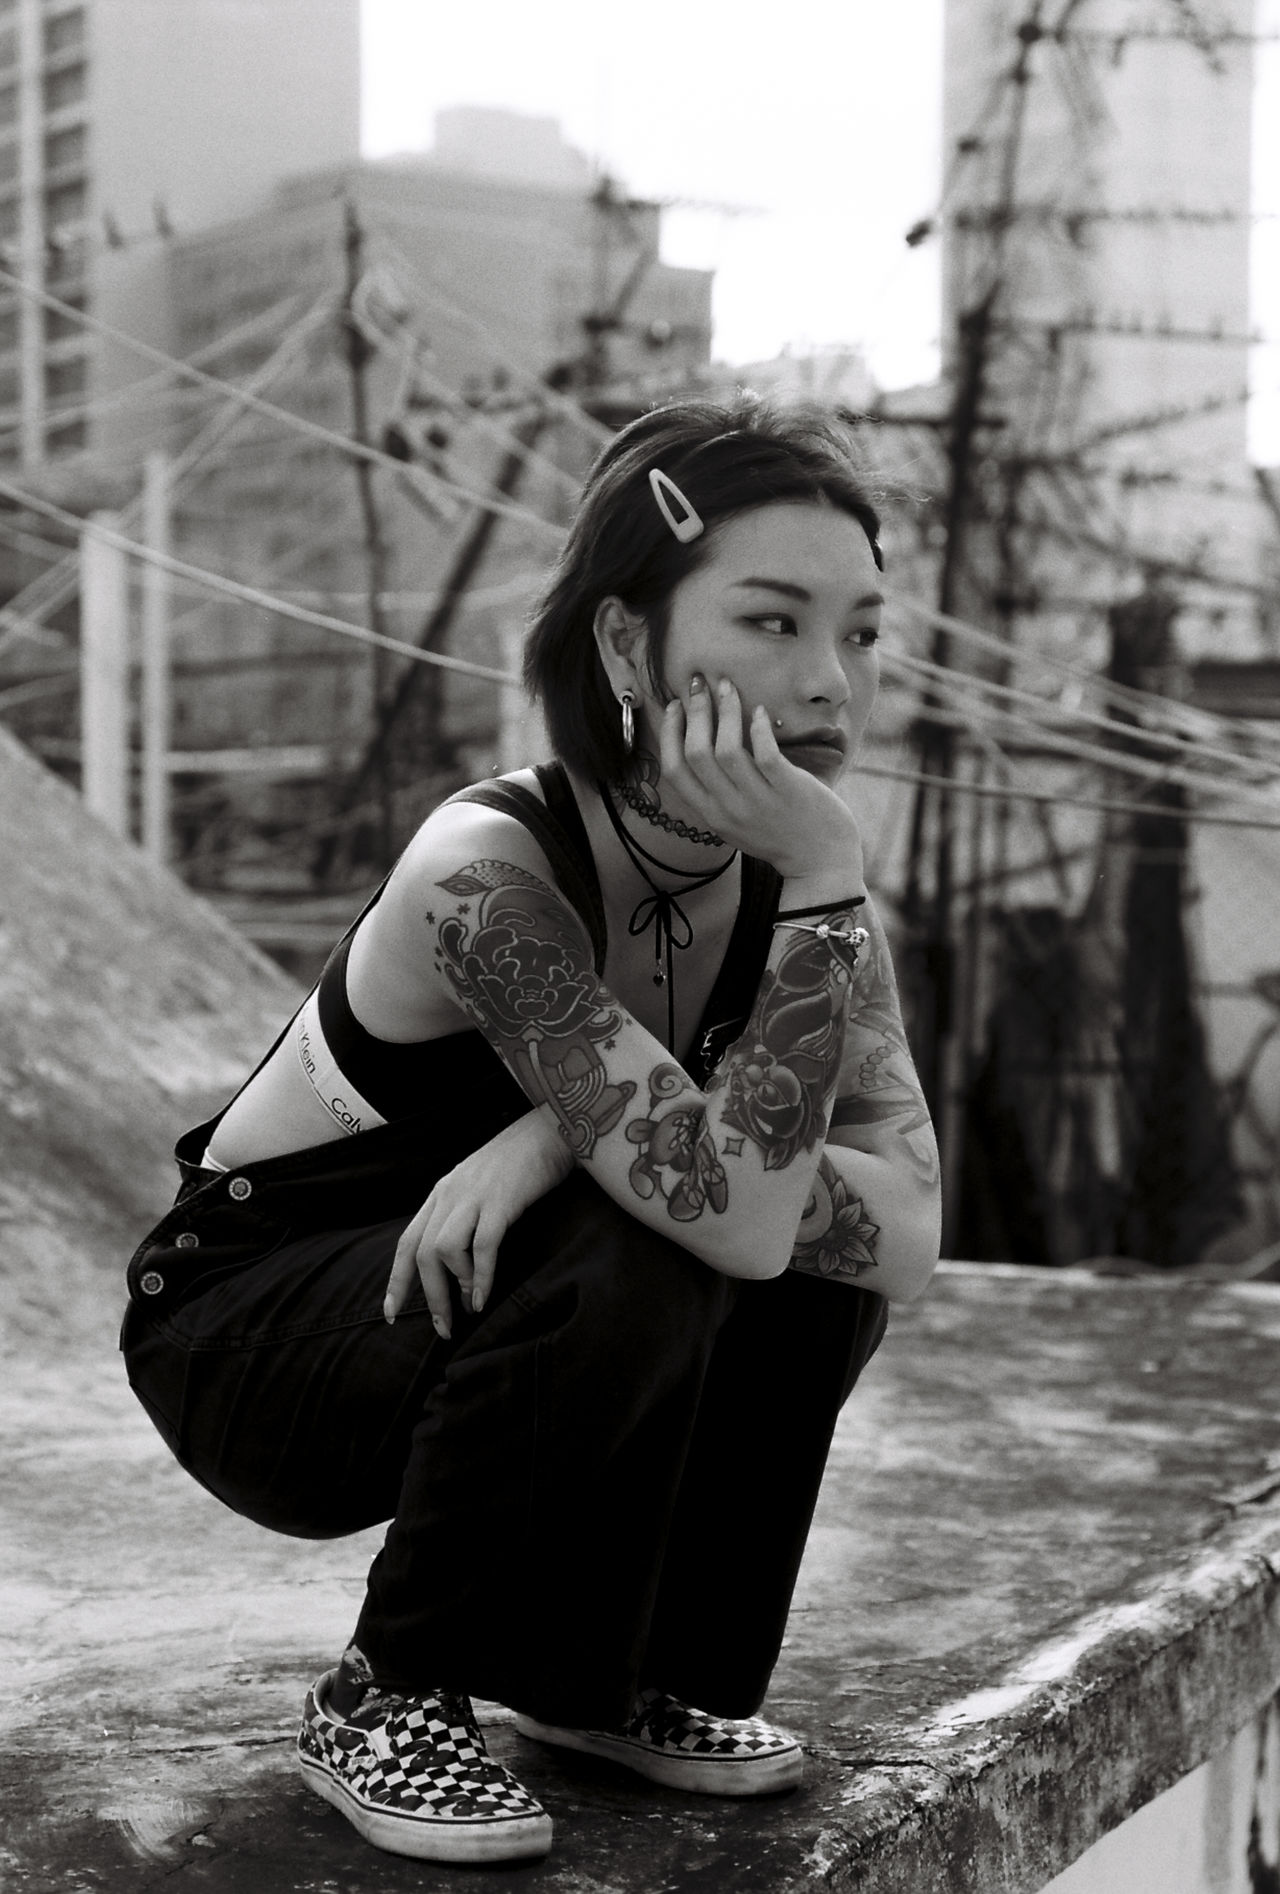 Thoughtful young woman with tattoos crouching on retaining wall at building terrace